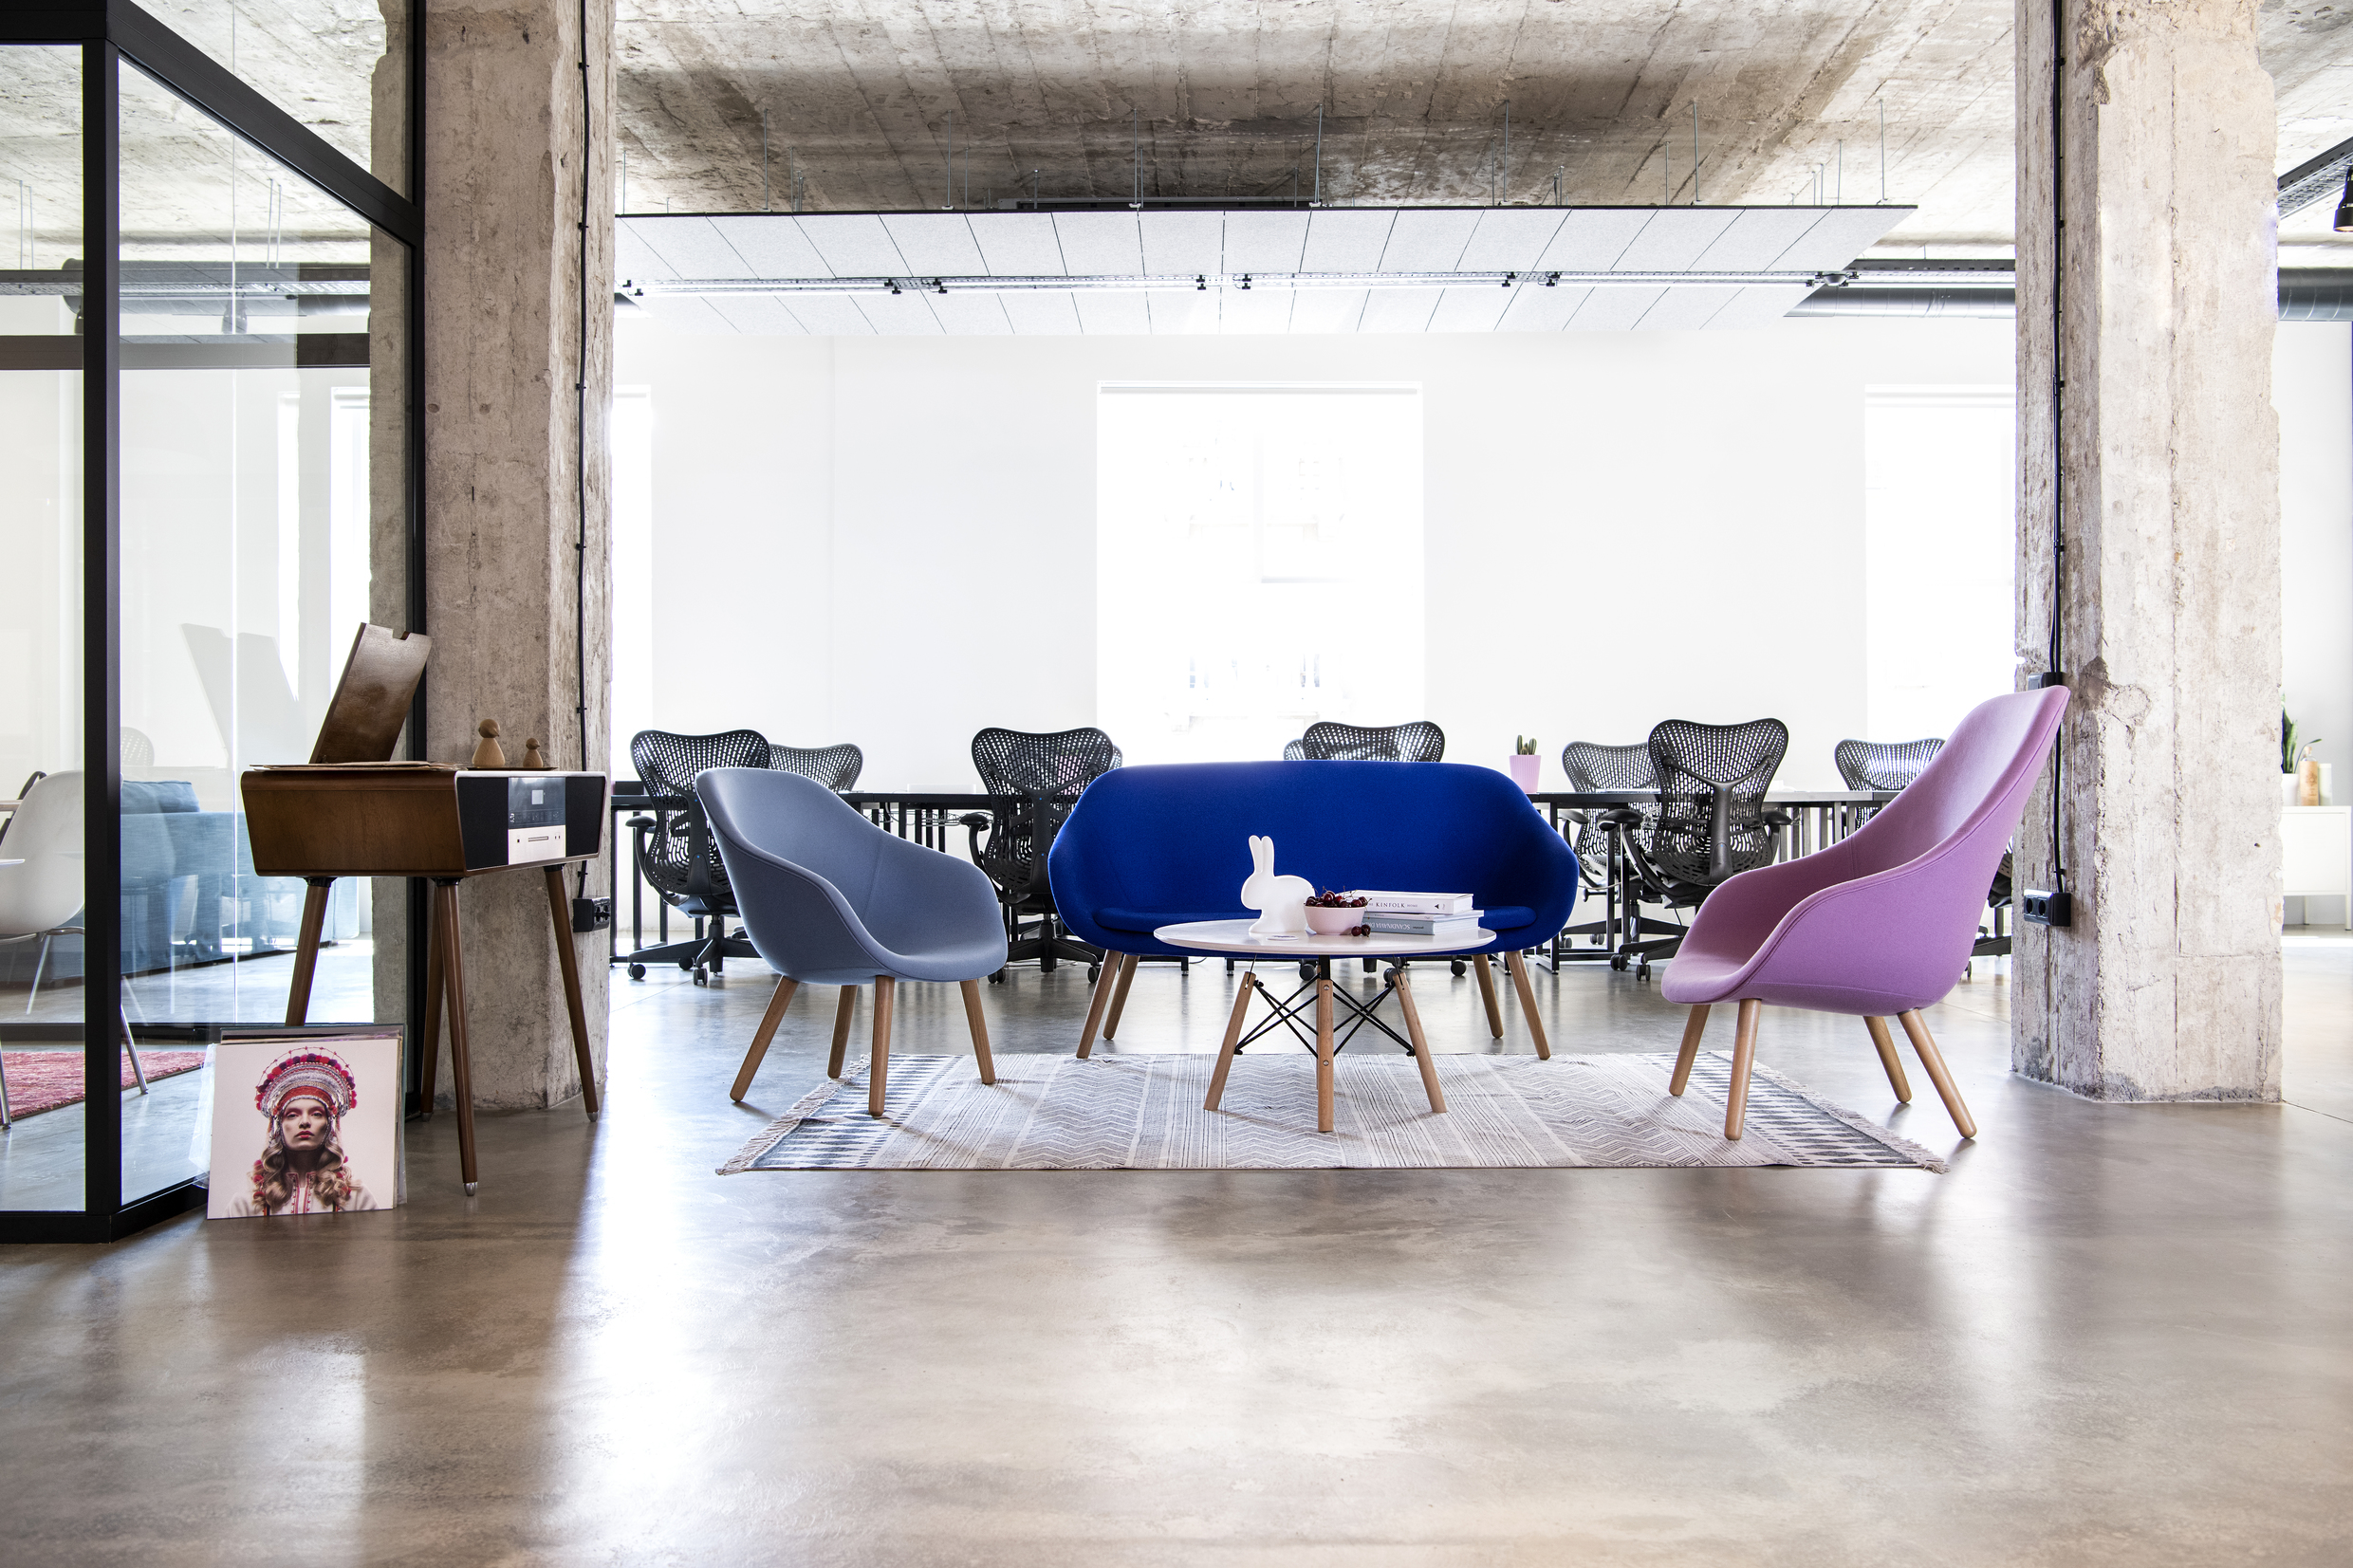 Cosy seating area at Despark agency headquarters, Sofia